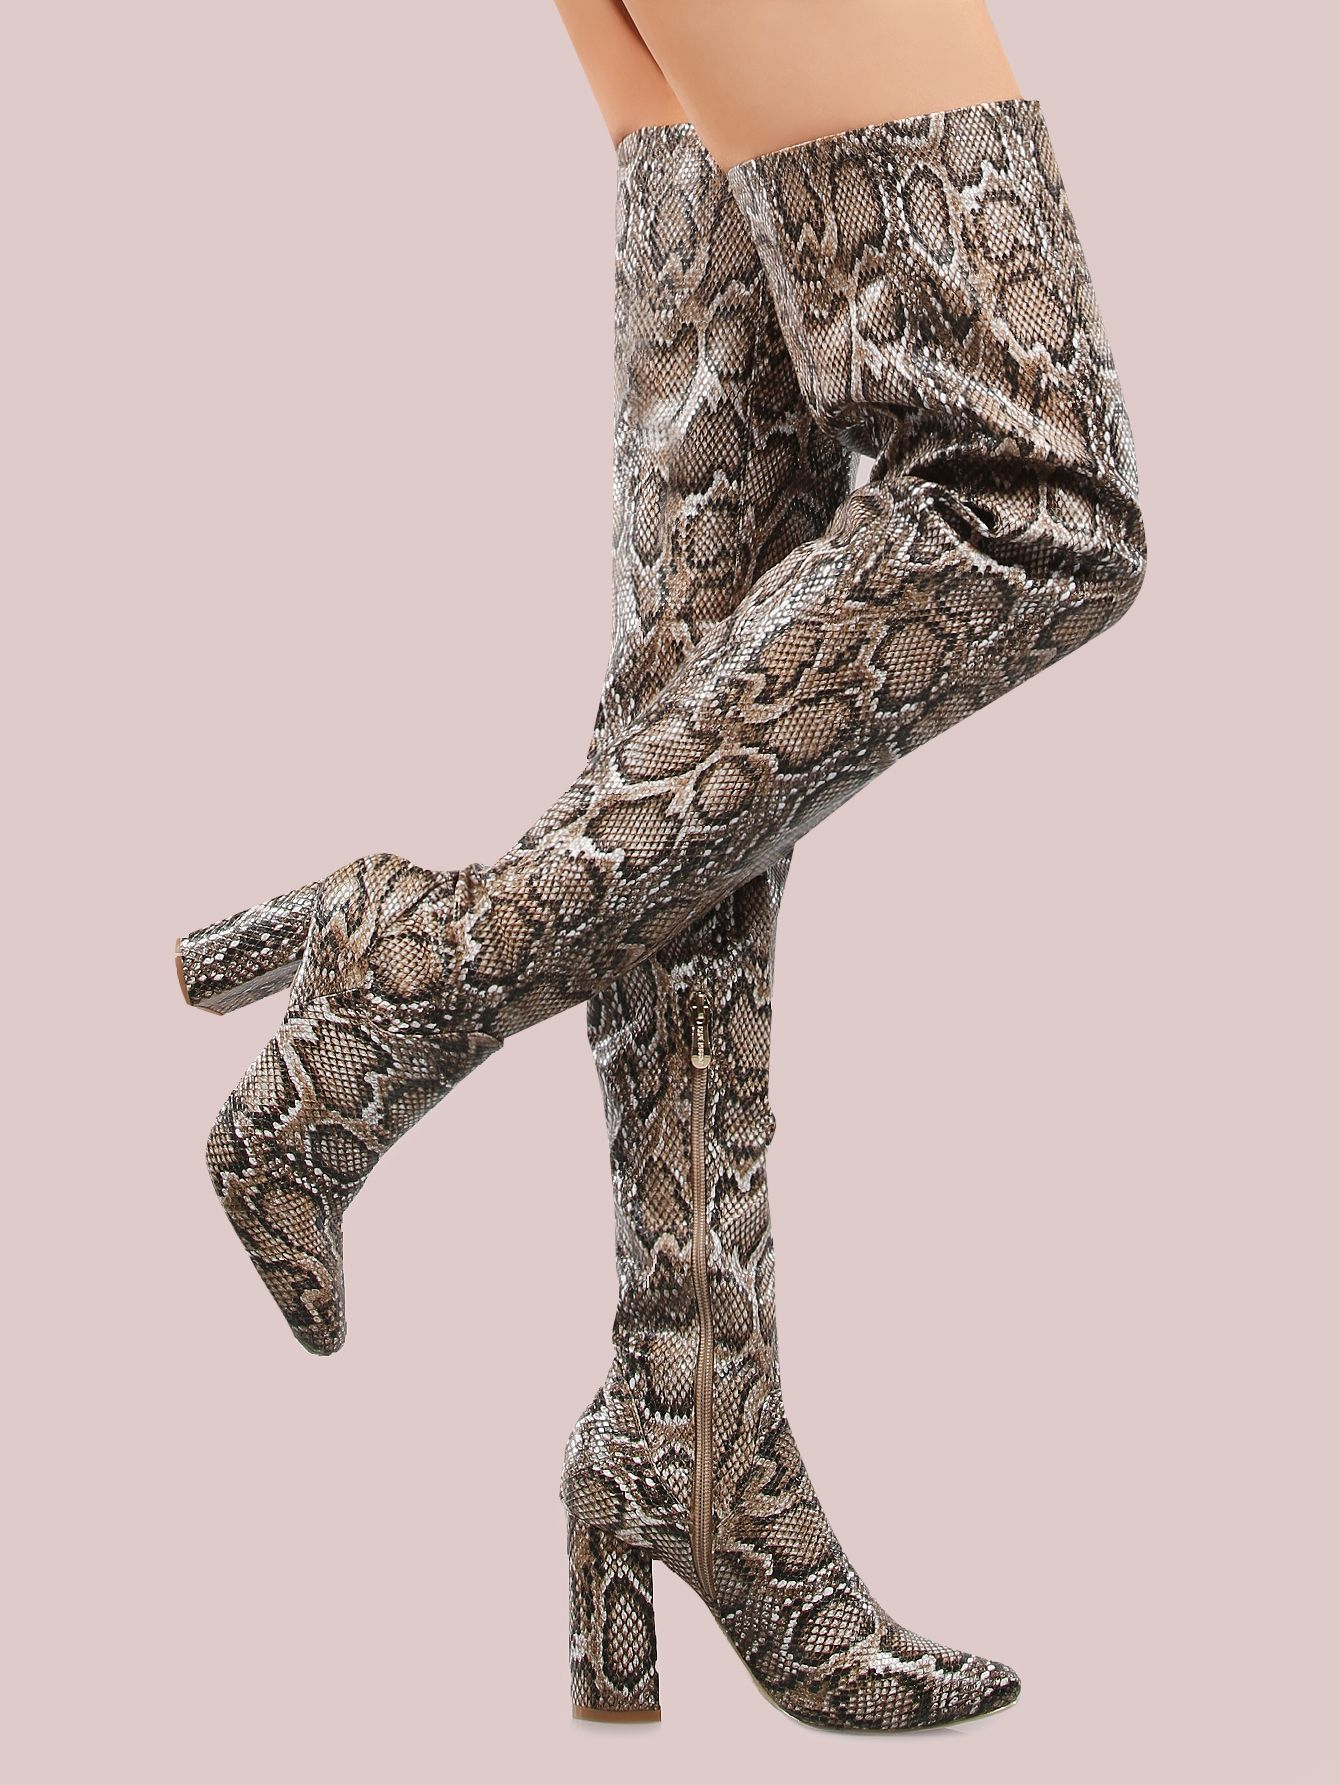 d914790d74 Shop Faux Snake Skin Thigh High Boots SNAKE online. SheIn offers Faux Snake  Skin Thigh High Boots SNAKE & more to fit your fashionable needs.